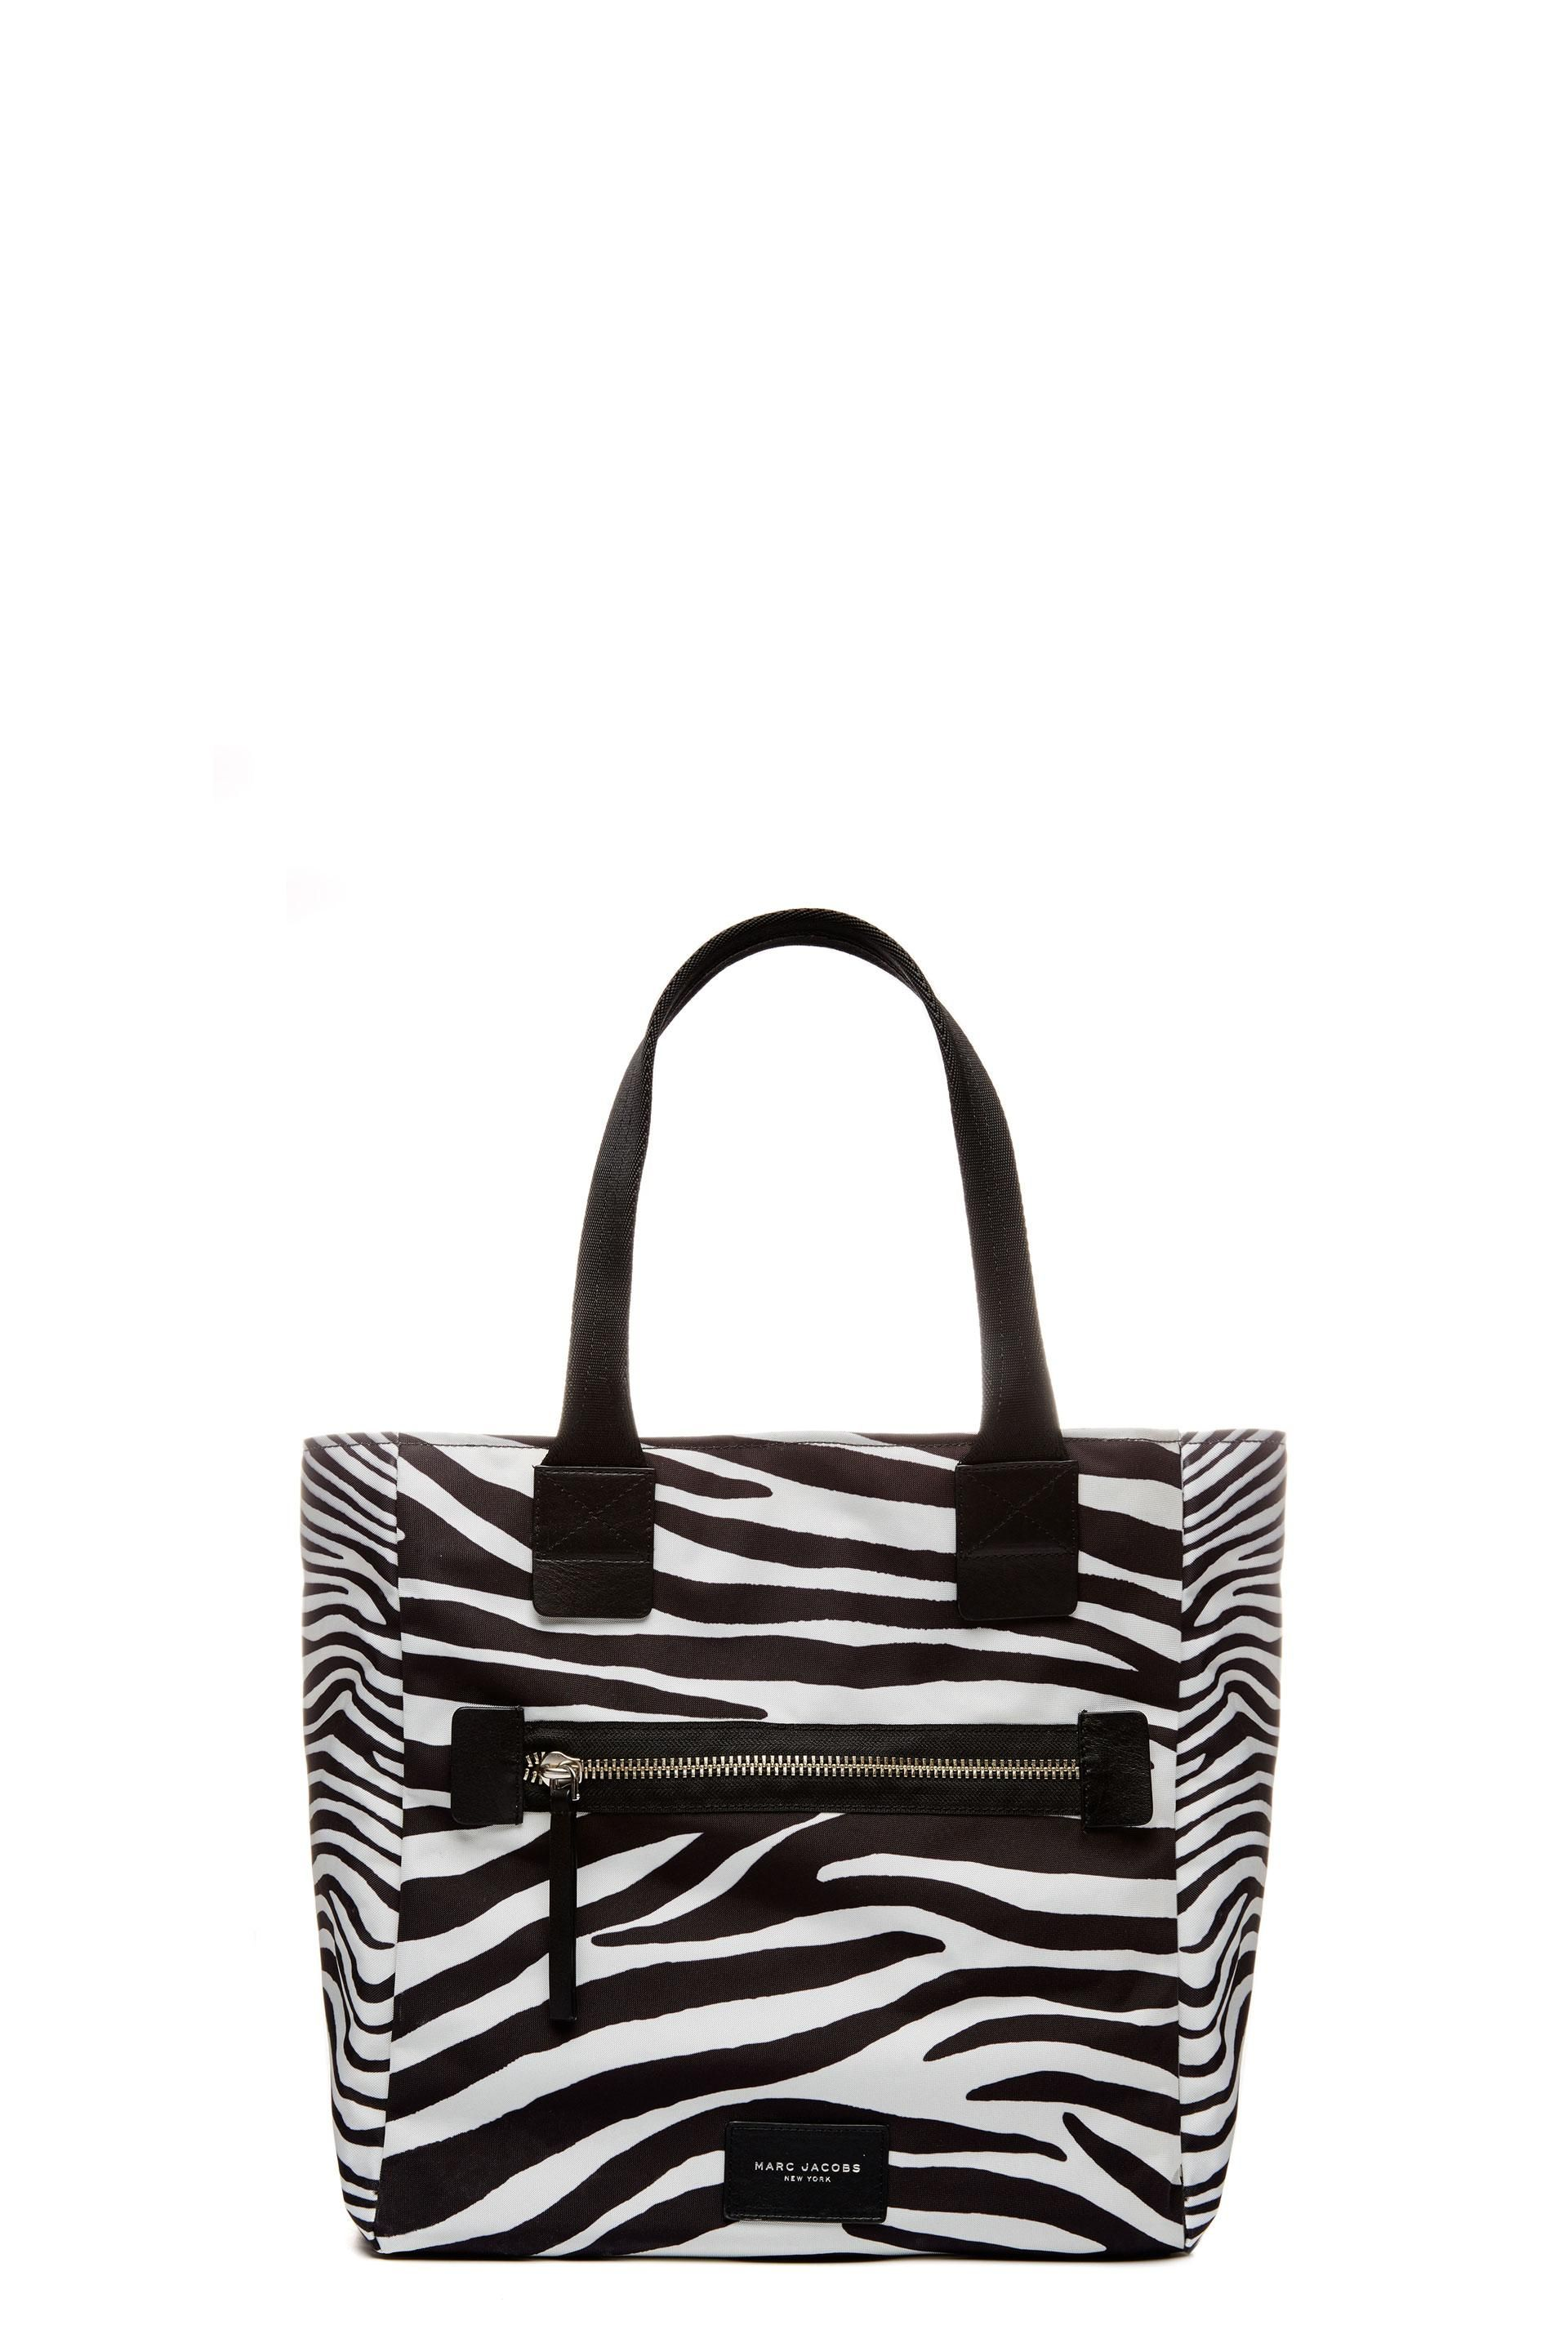 dfc653a823 Pin by Marc Jacobs on Marc Jacobs Bags & Wallets | Bags, Marc jacobs ...